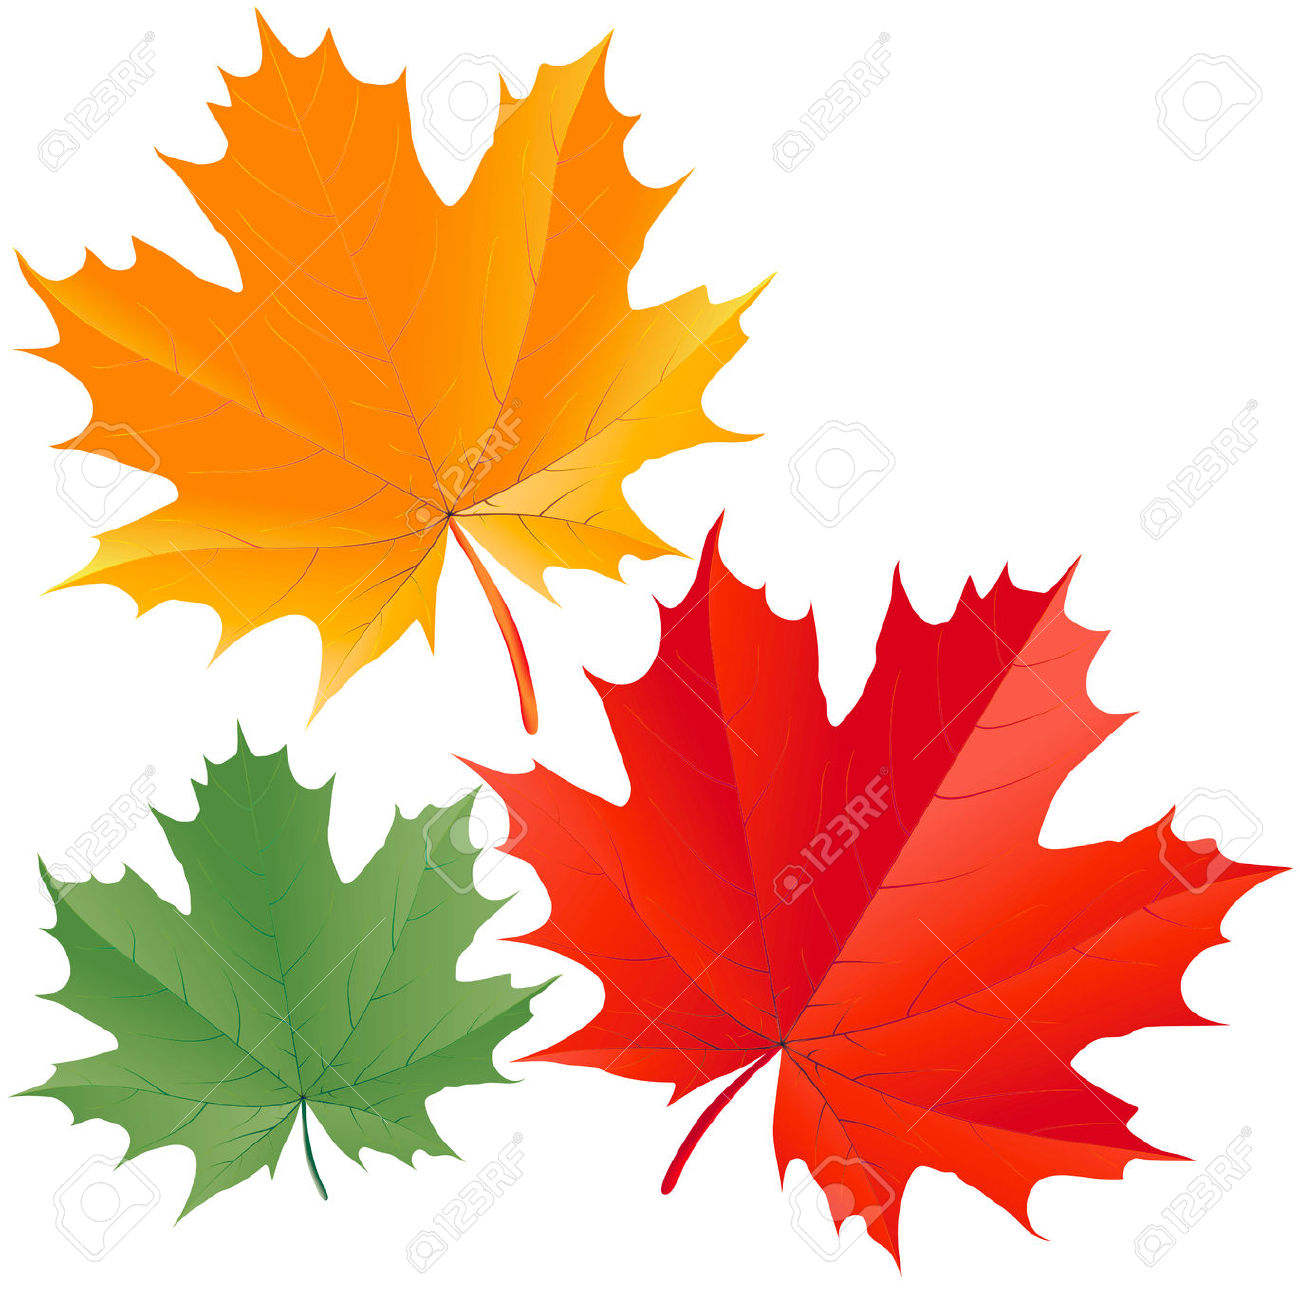 Colorful Maple Leaves Royalty Free Cliparts, Vectors, And Stock.